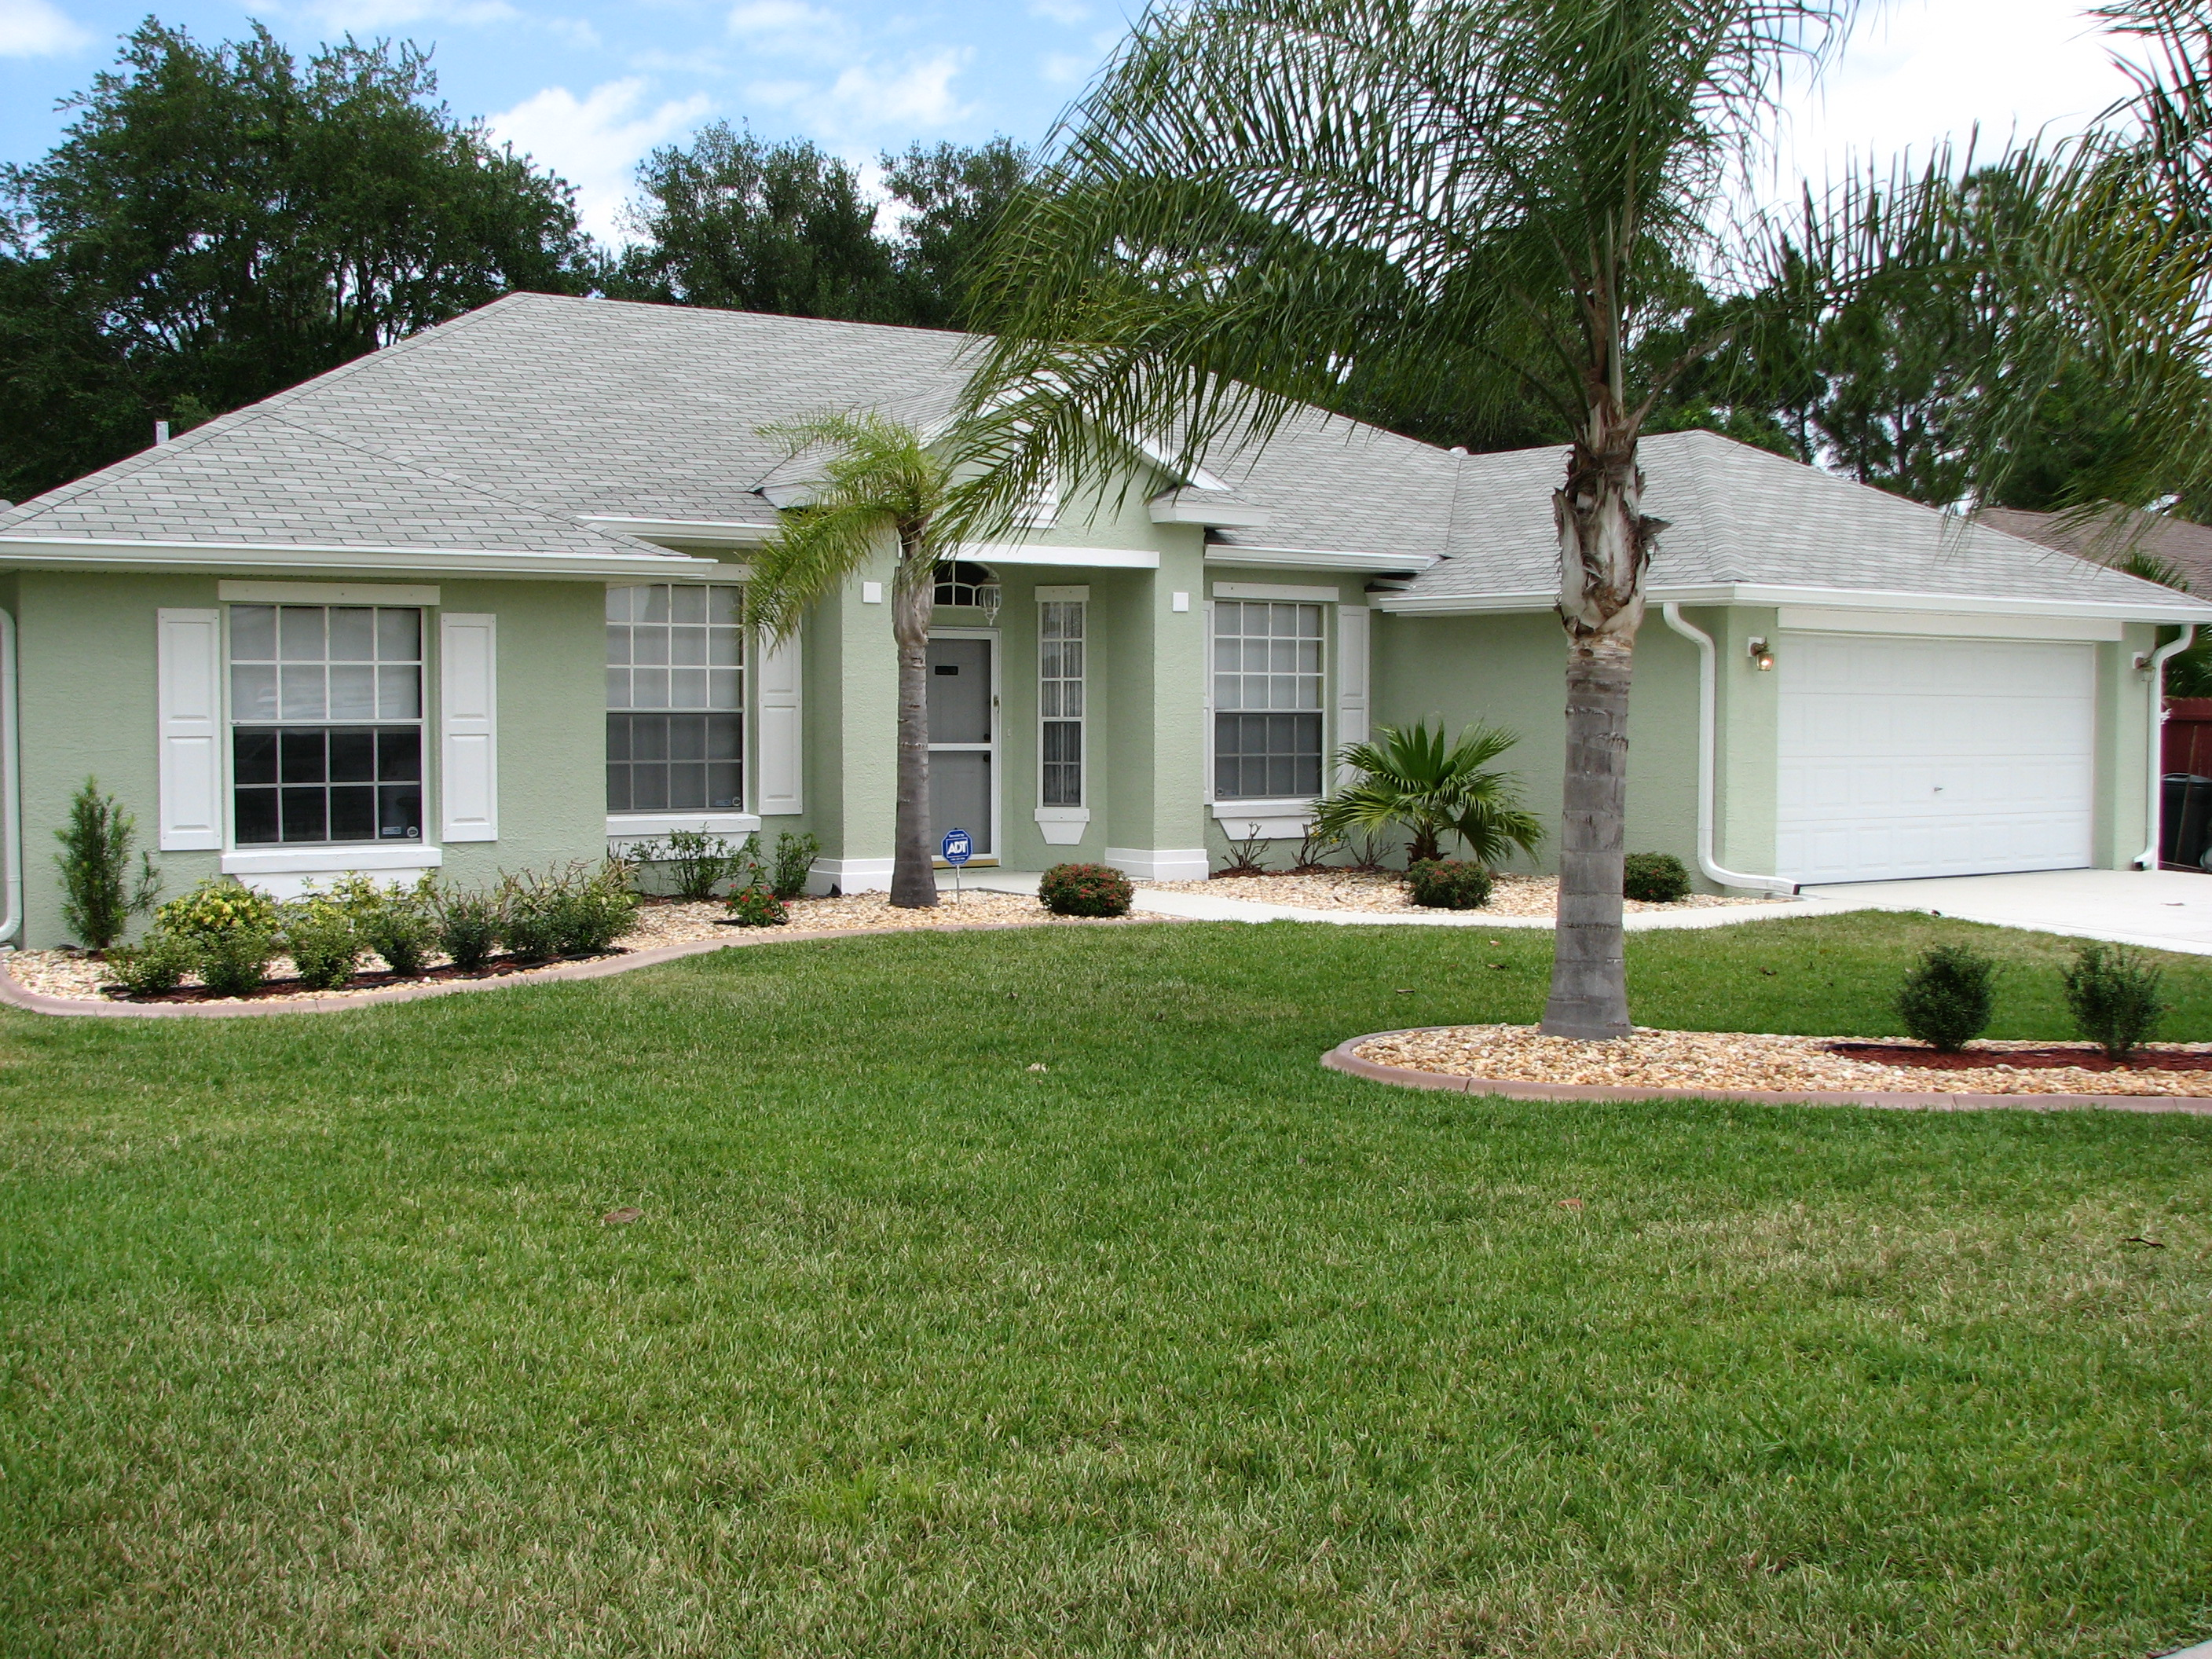 Cocoa fl exterior house painting project by peck painting for Florida stucco